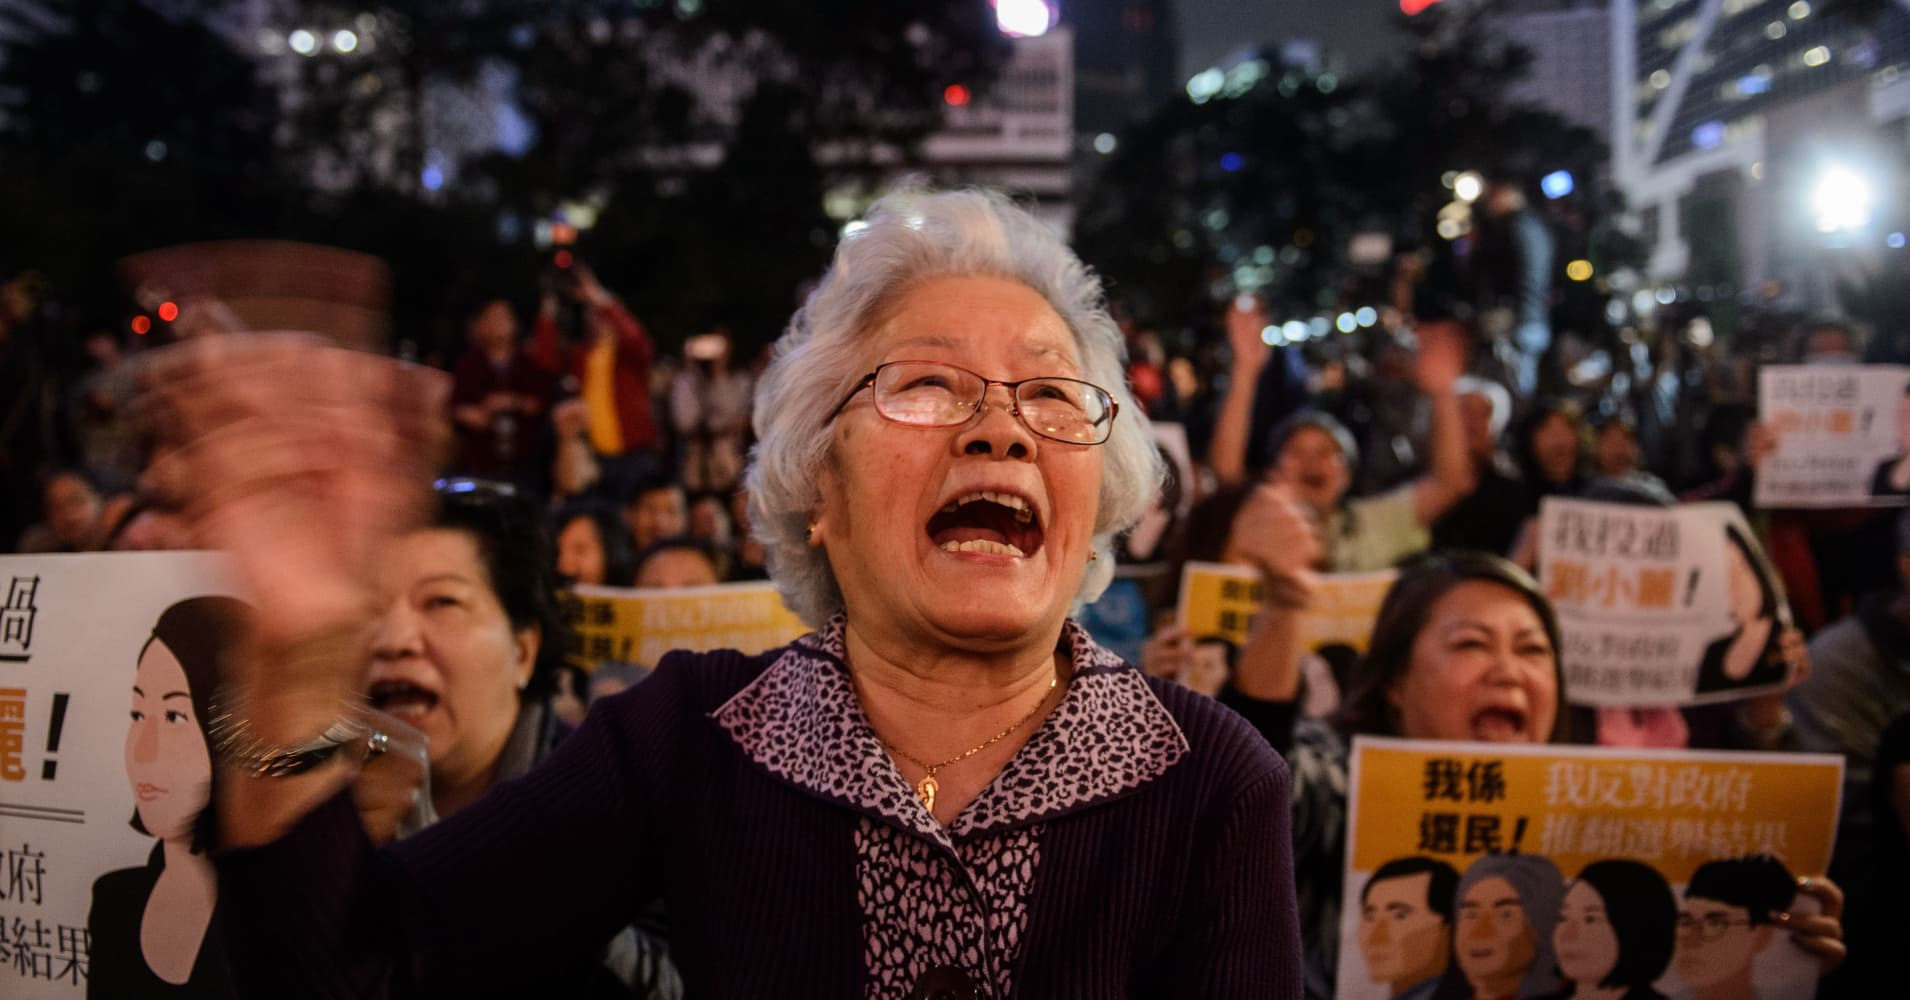 an analysis of the future of hong kongs economy You may also sort these by color rating or essay length throwing things out of anger is never a smart move, but it can also lead to more serious an analysis of the future of hong kongs economy consequences.